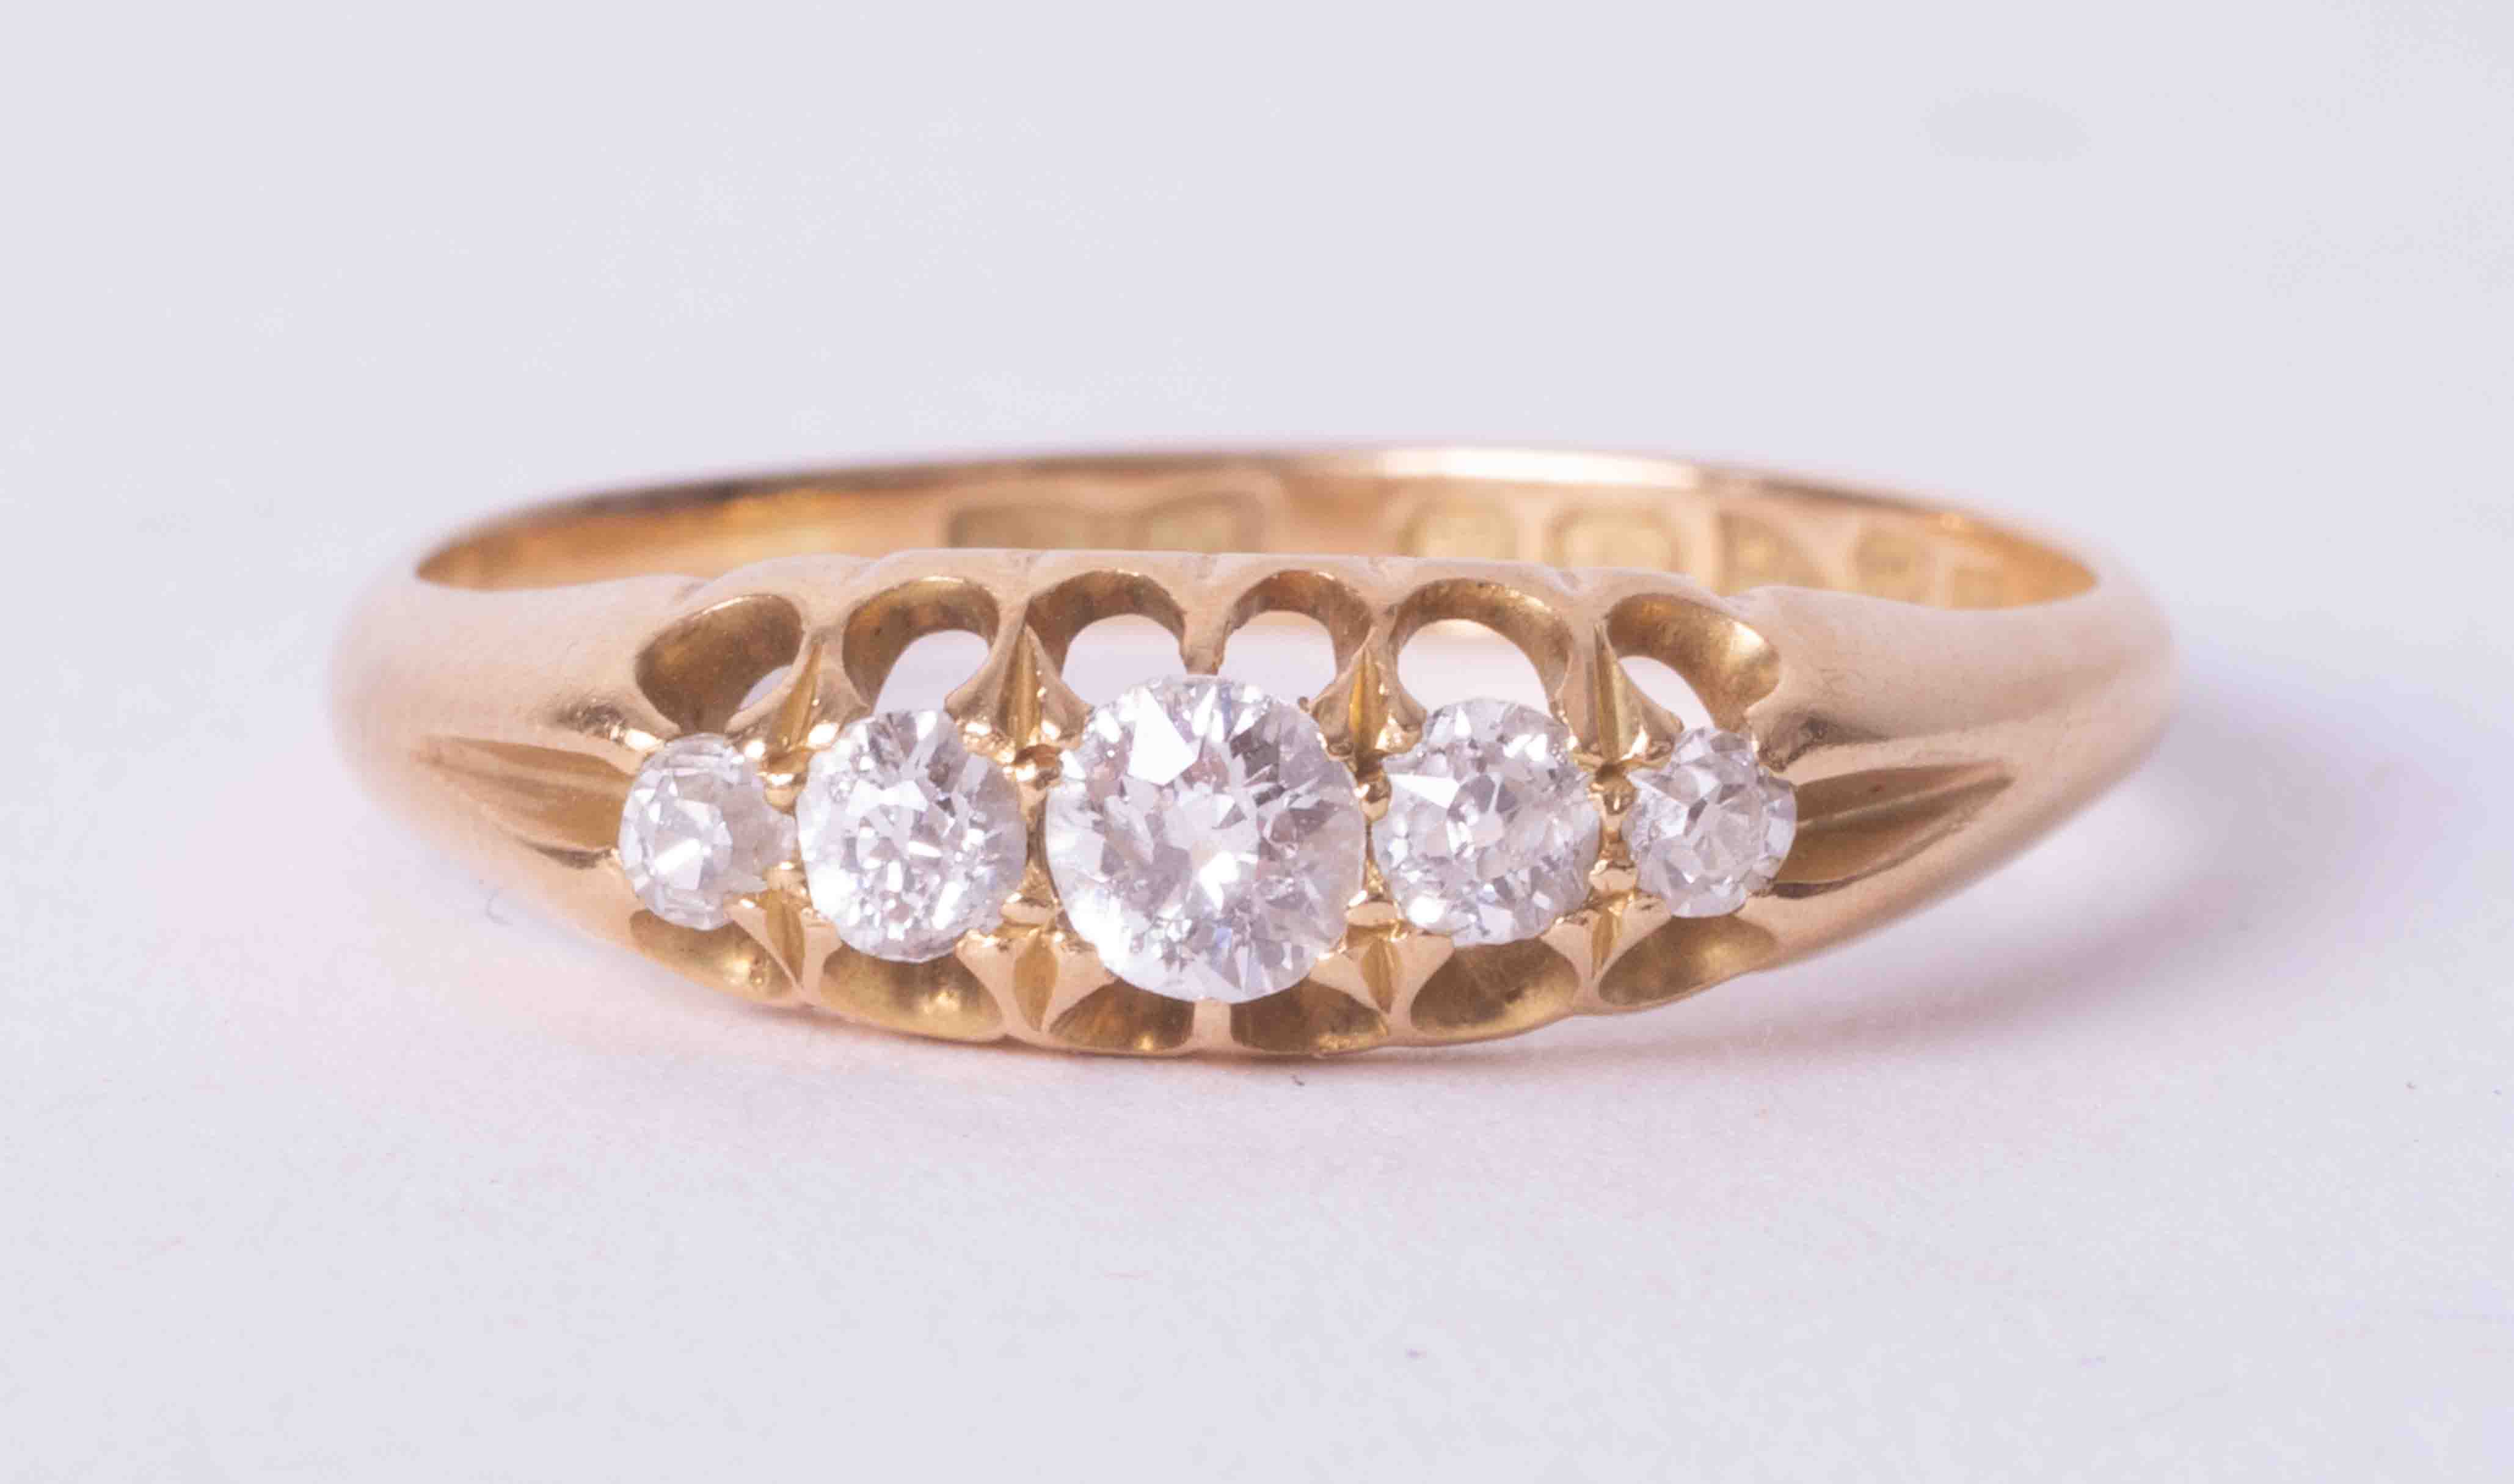 An antique 18ct yellow gold five stone ring set with approx. 0.35 carats of old round cut